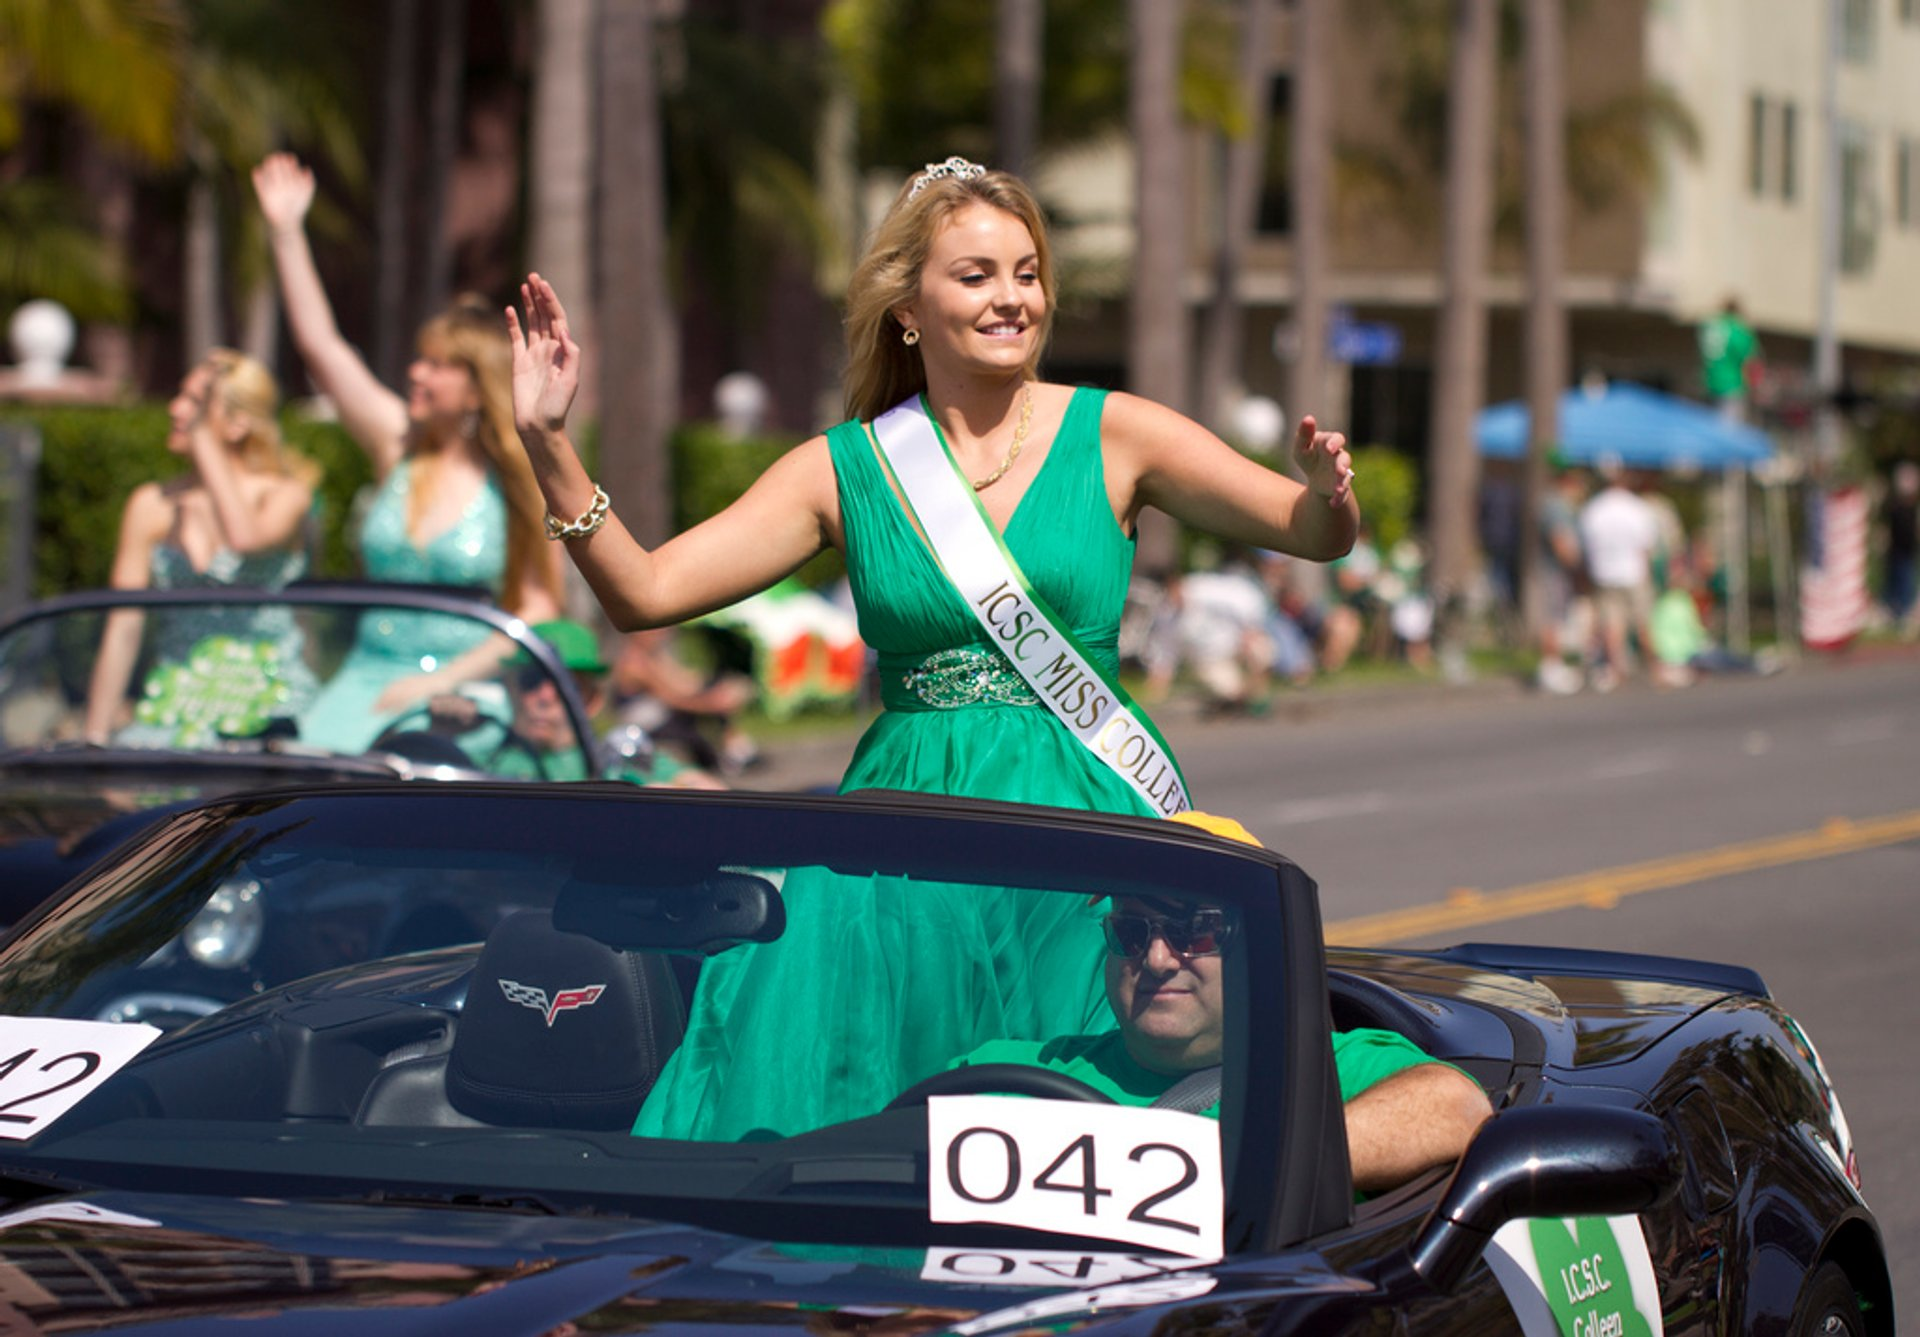 St. Patrick's Day Parade & Festival in San Diego 2019 - Best Time